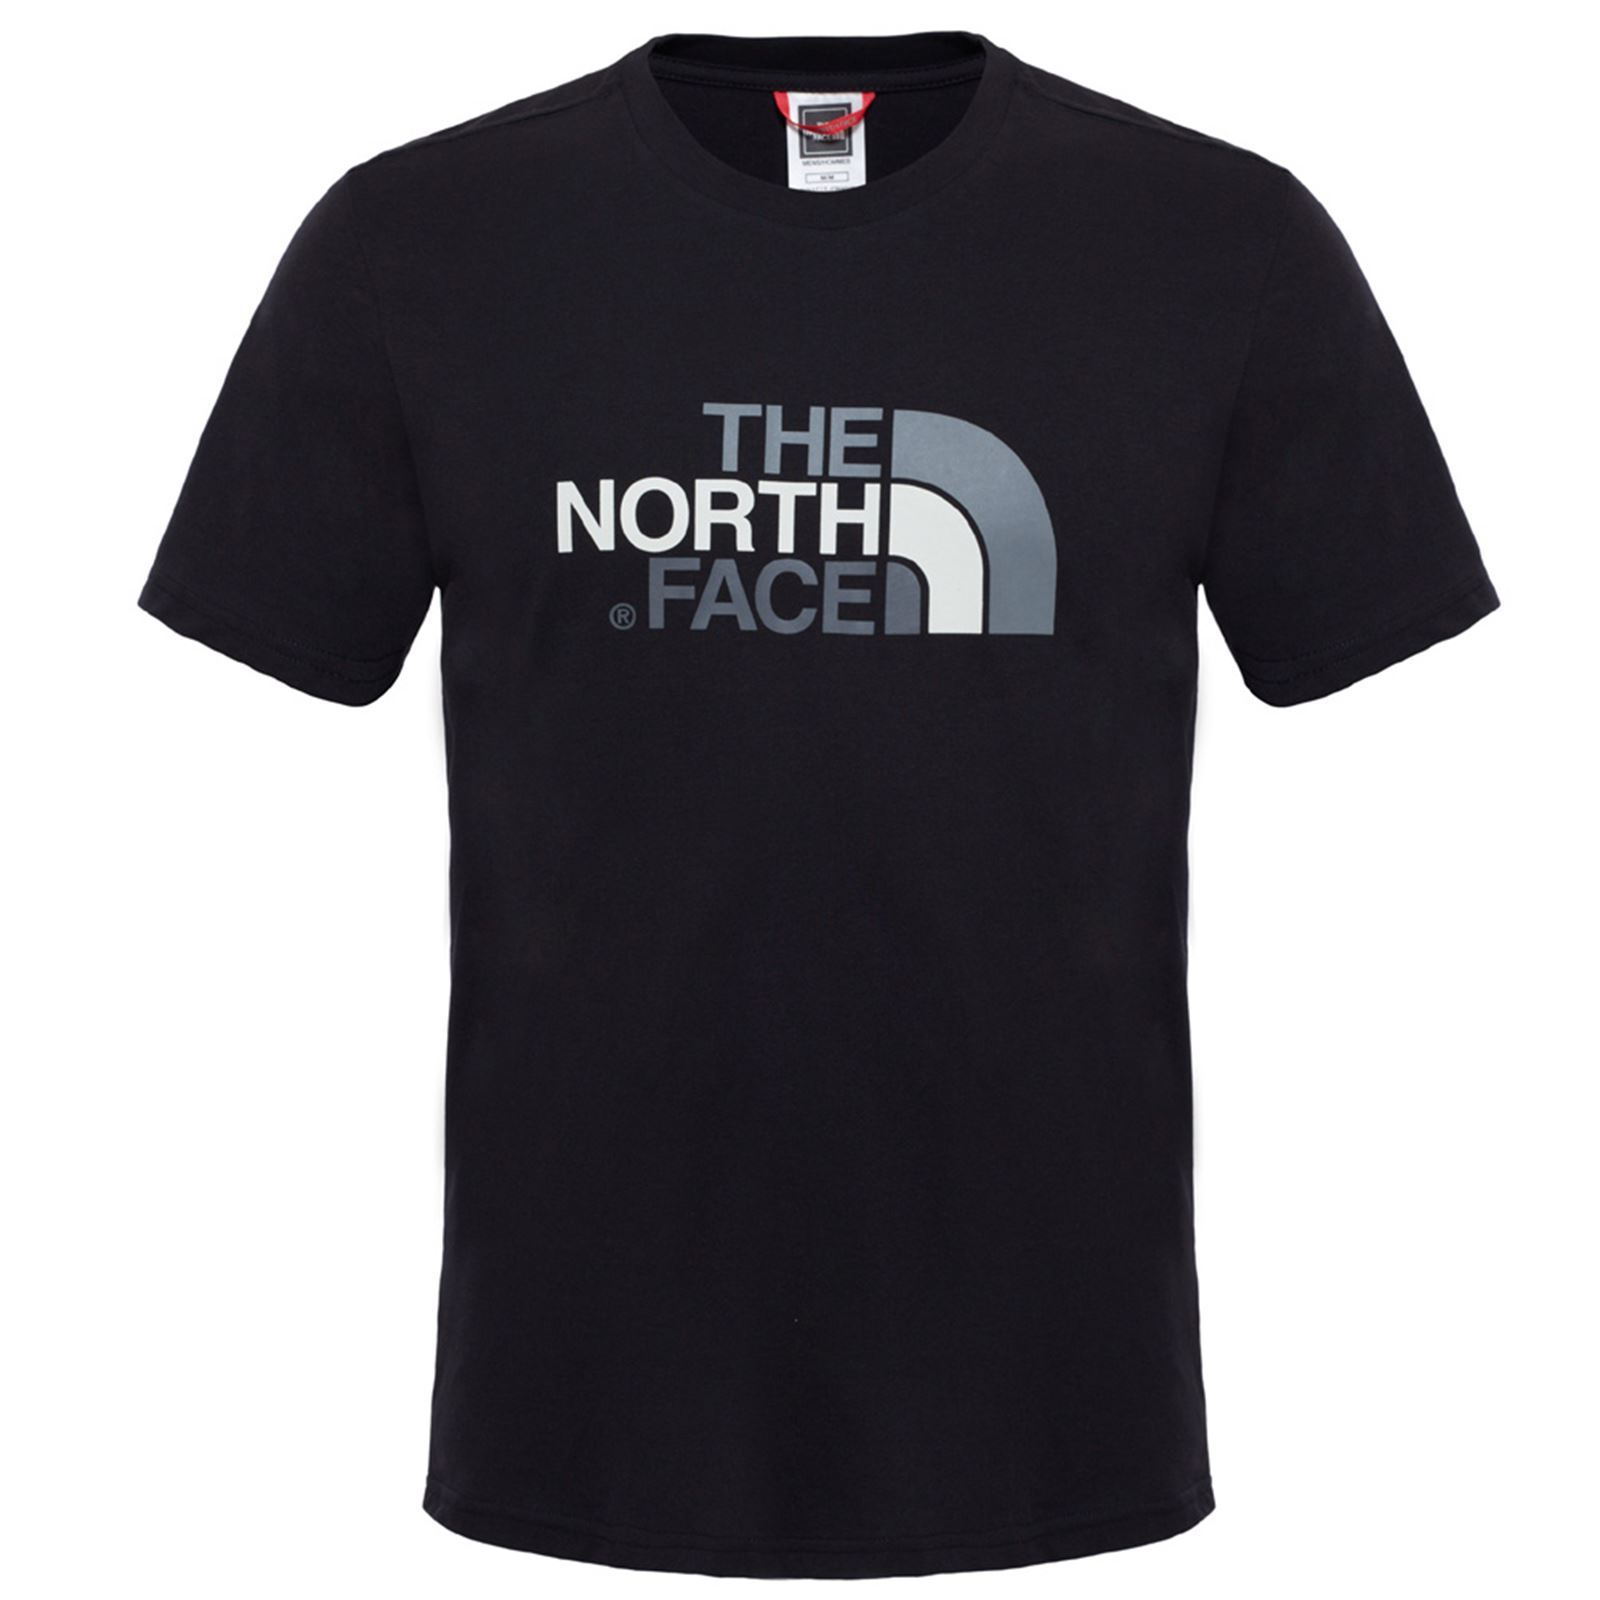 The Homme Sleeves TeeT Noir V Short Manches Courtes shirt Easy North Face jLRA534